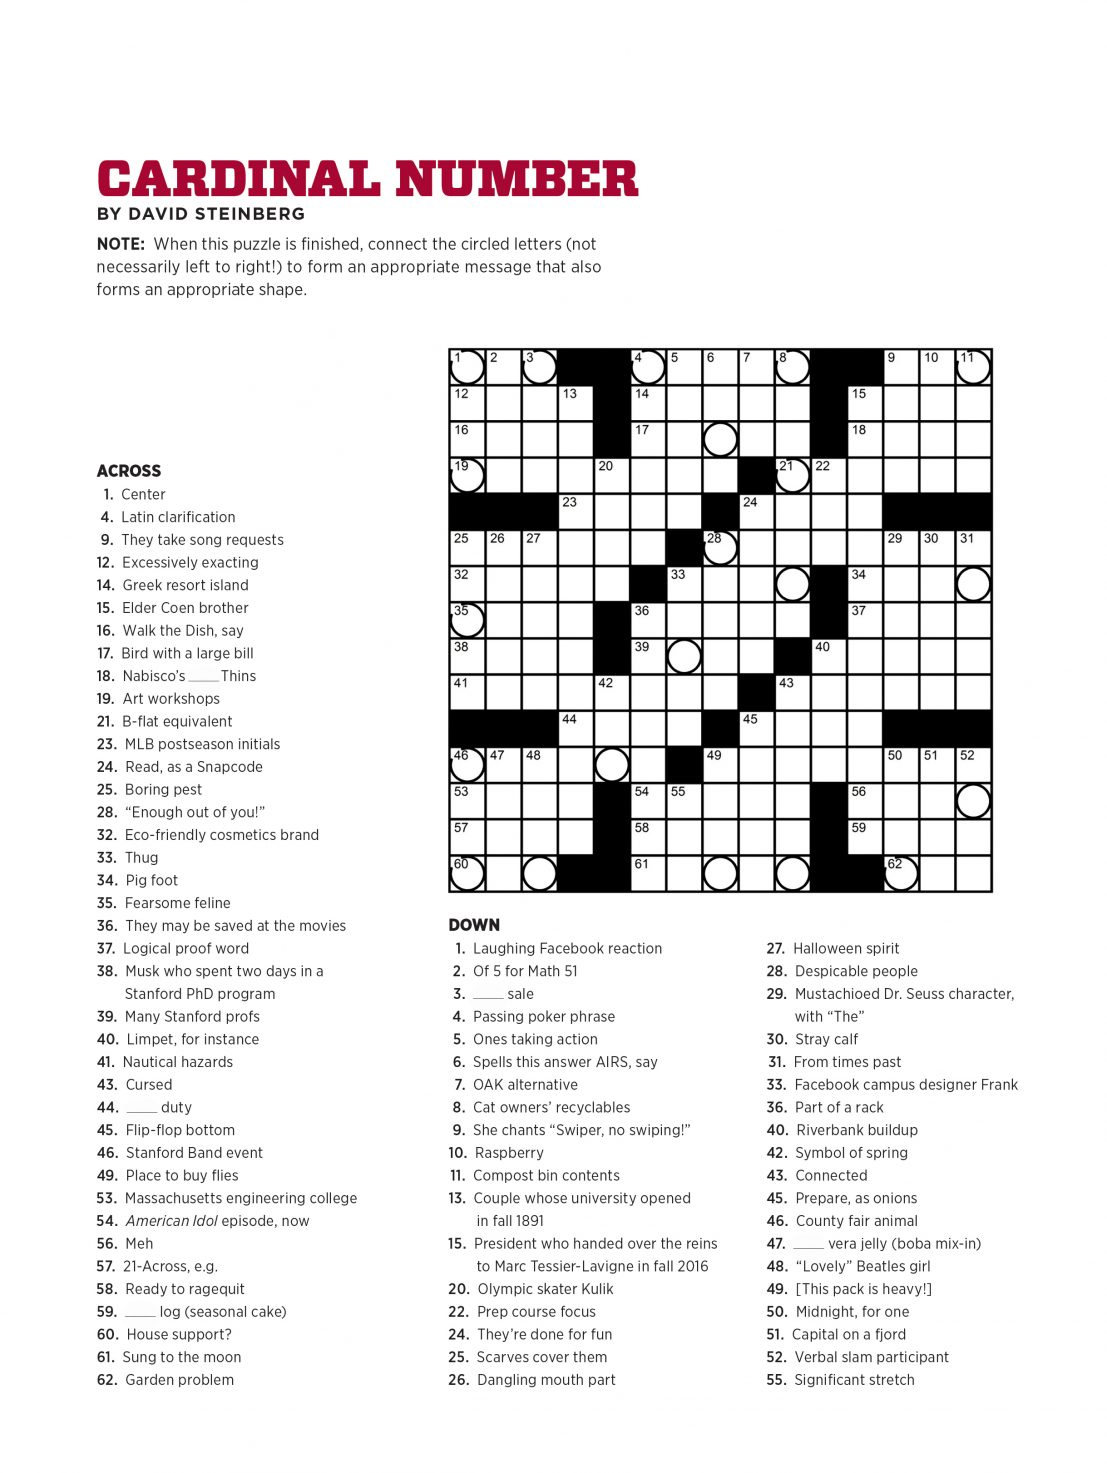 Free Printable Daily Crossword Puzzles (82+ Images In Collection) Page 1 - Printable Pokemon Puzzles